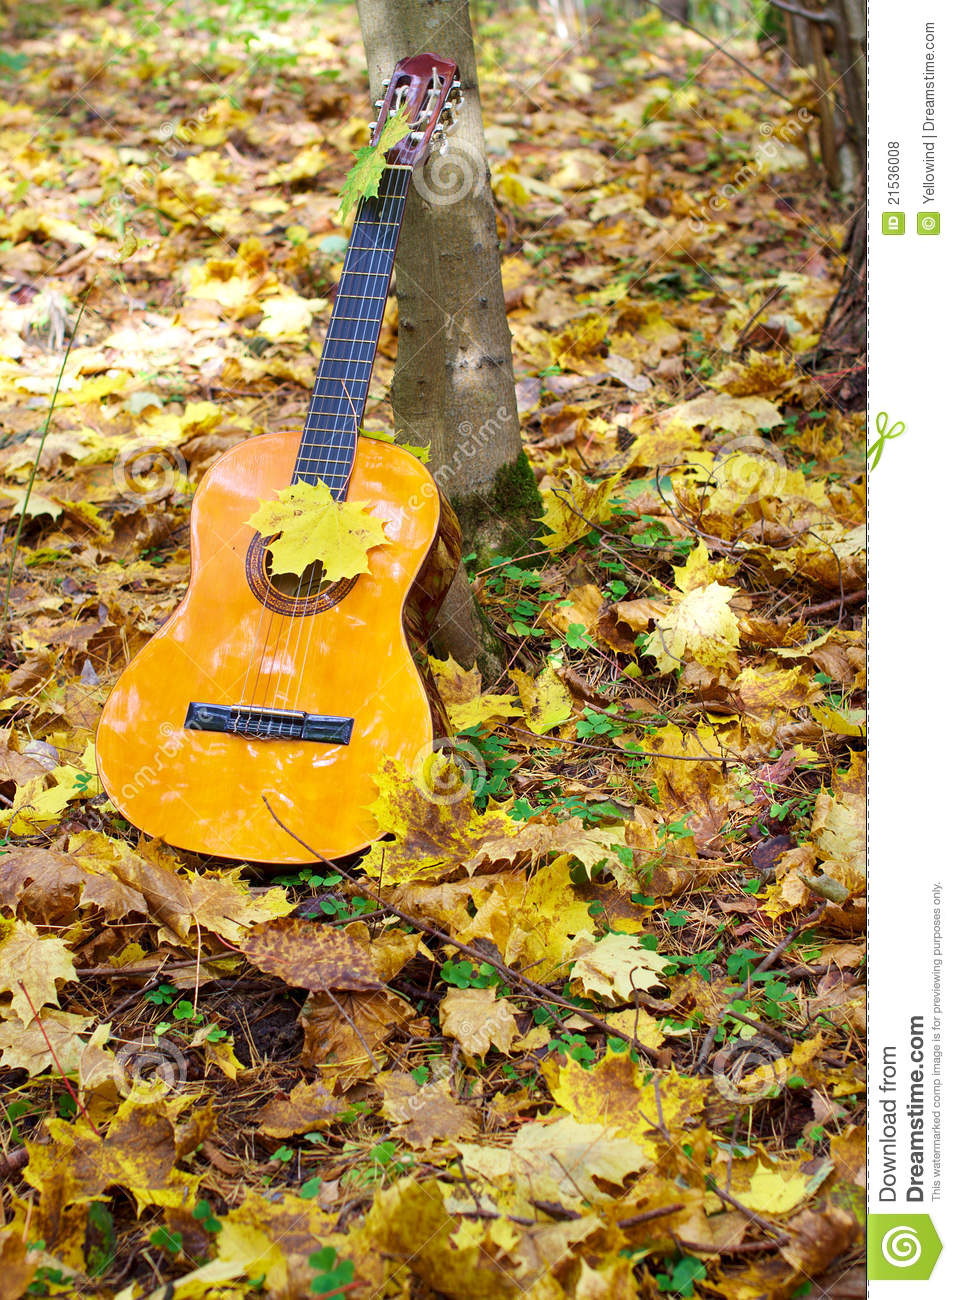 Free Stock Photo: Music Guitar In Autumn Leaves Forest Background Stock